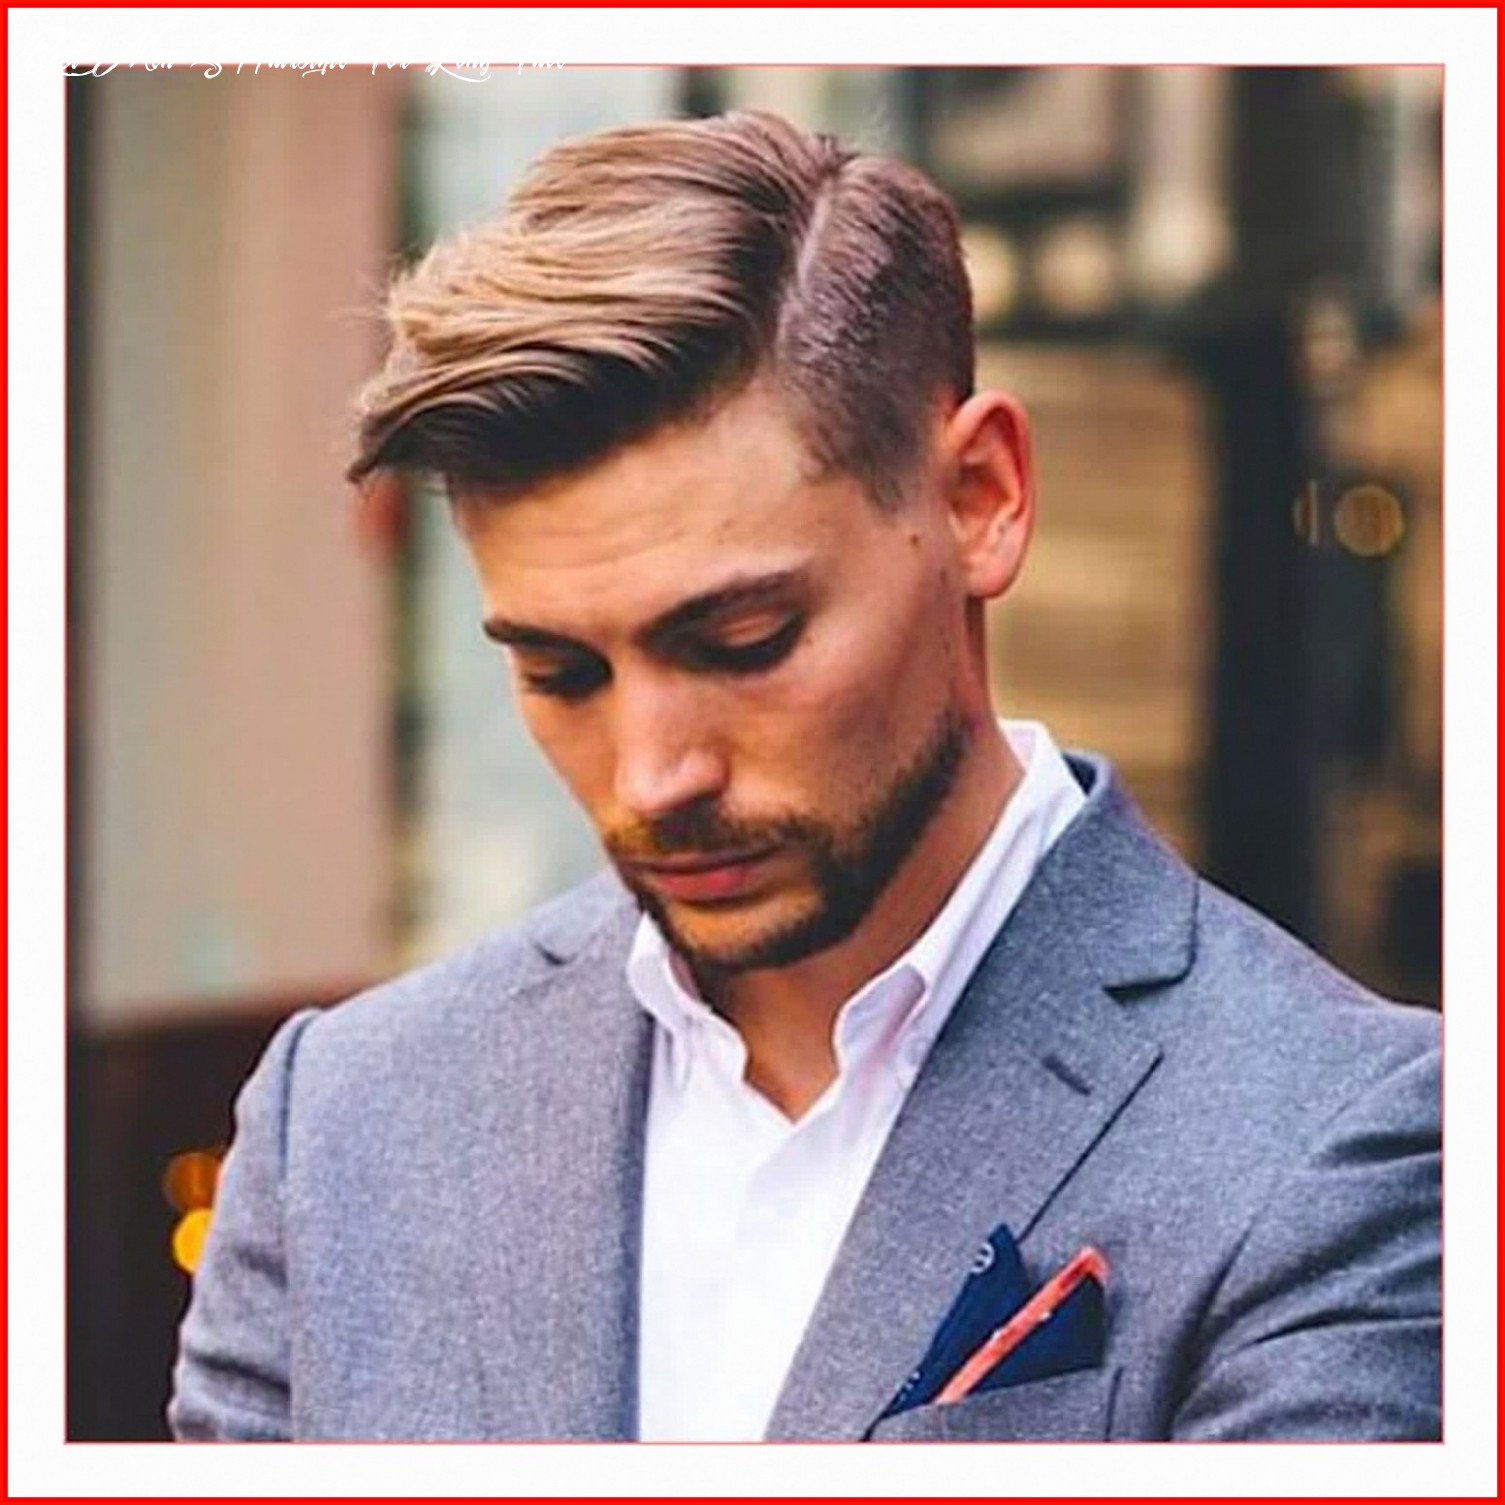 Top Mens Hairstyle for Oblong Face Picture Of Mens Hairstyles ...